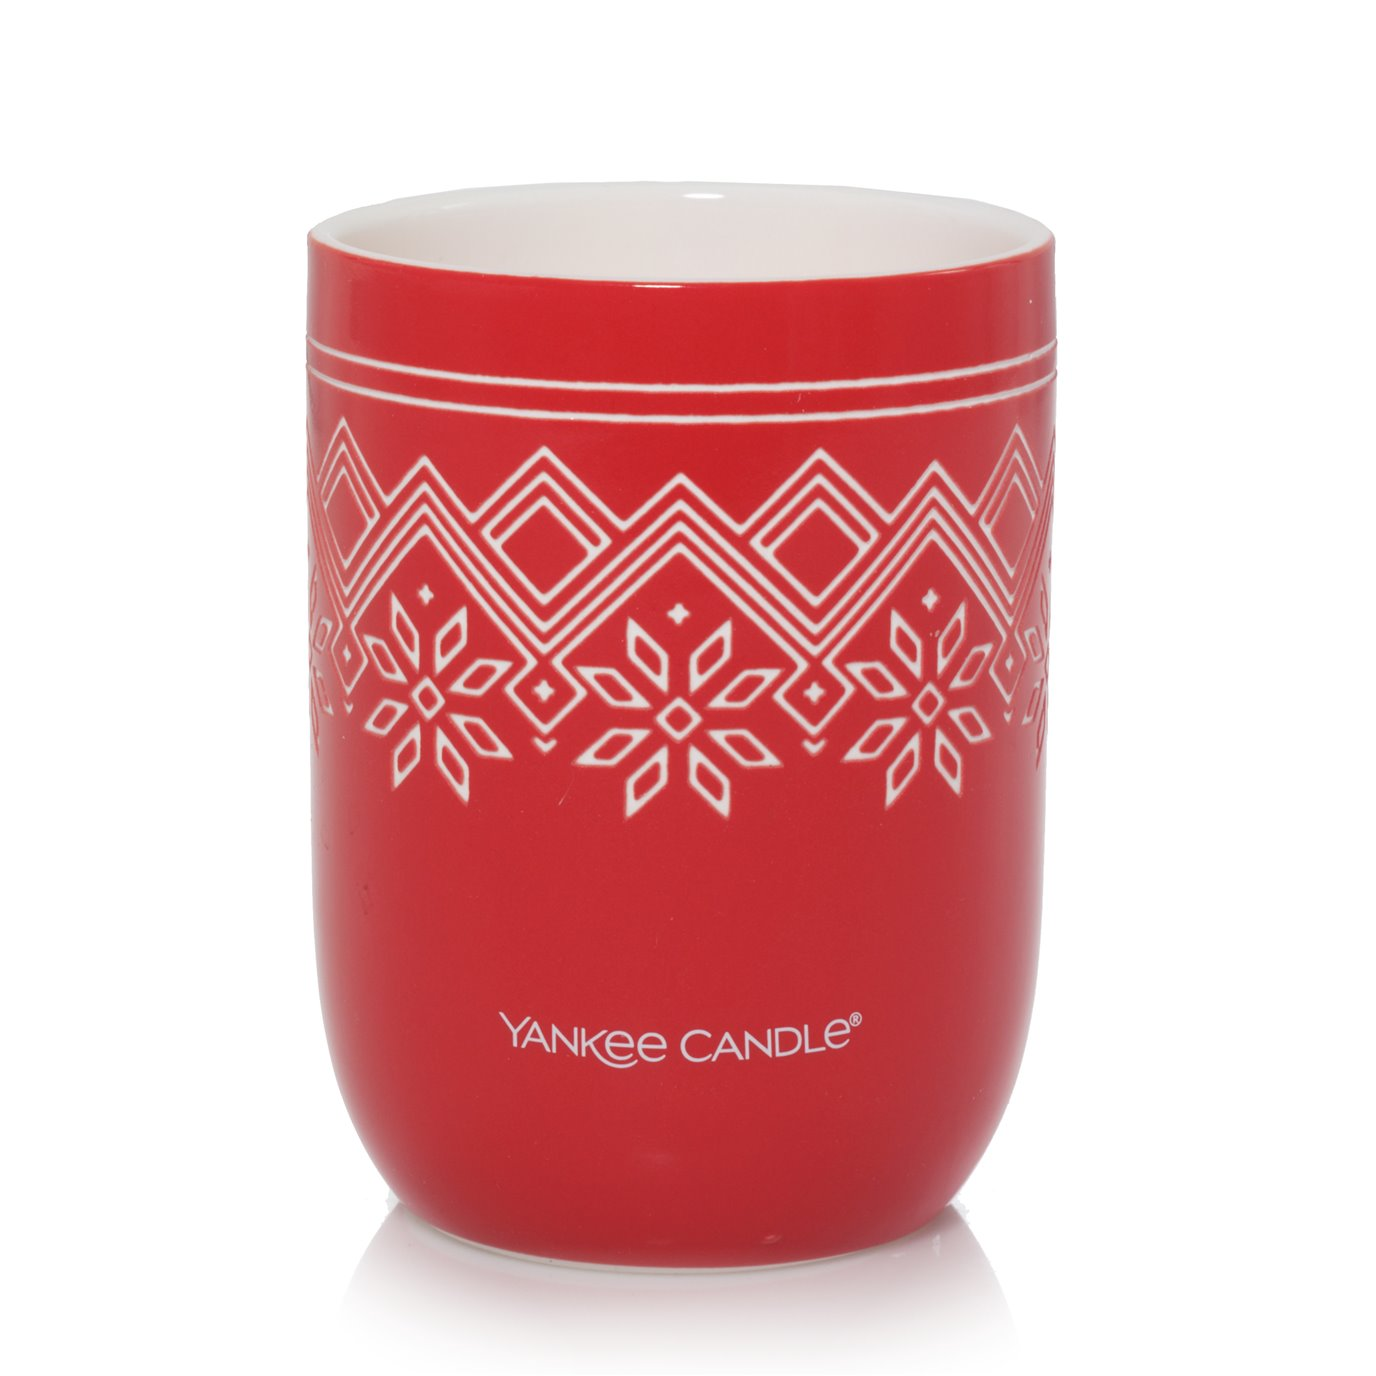 Yankee Candle Sparkling Cinnamon Nordic Design Ceramic Filled Candle